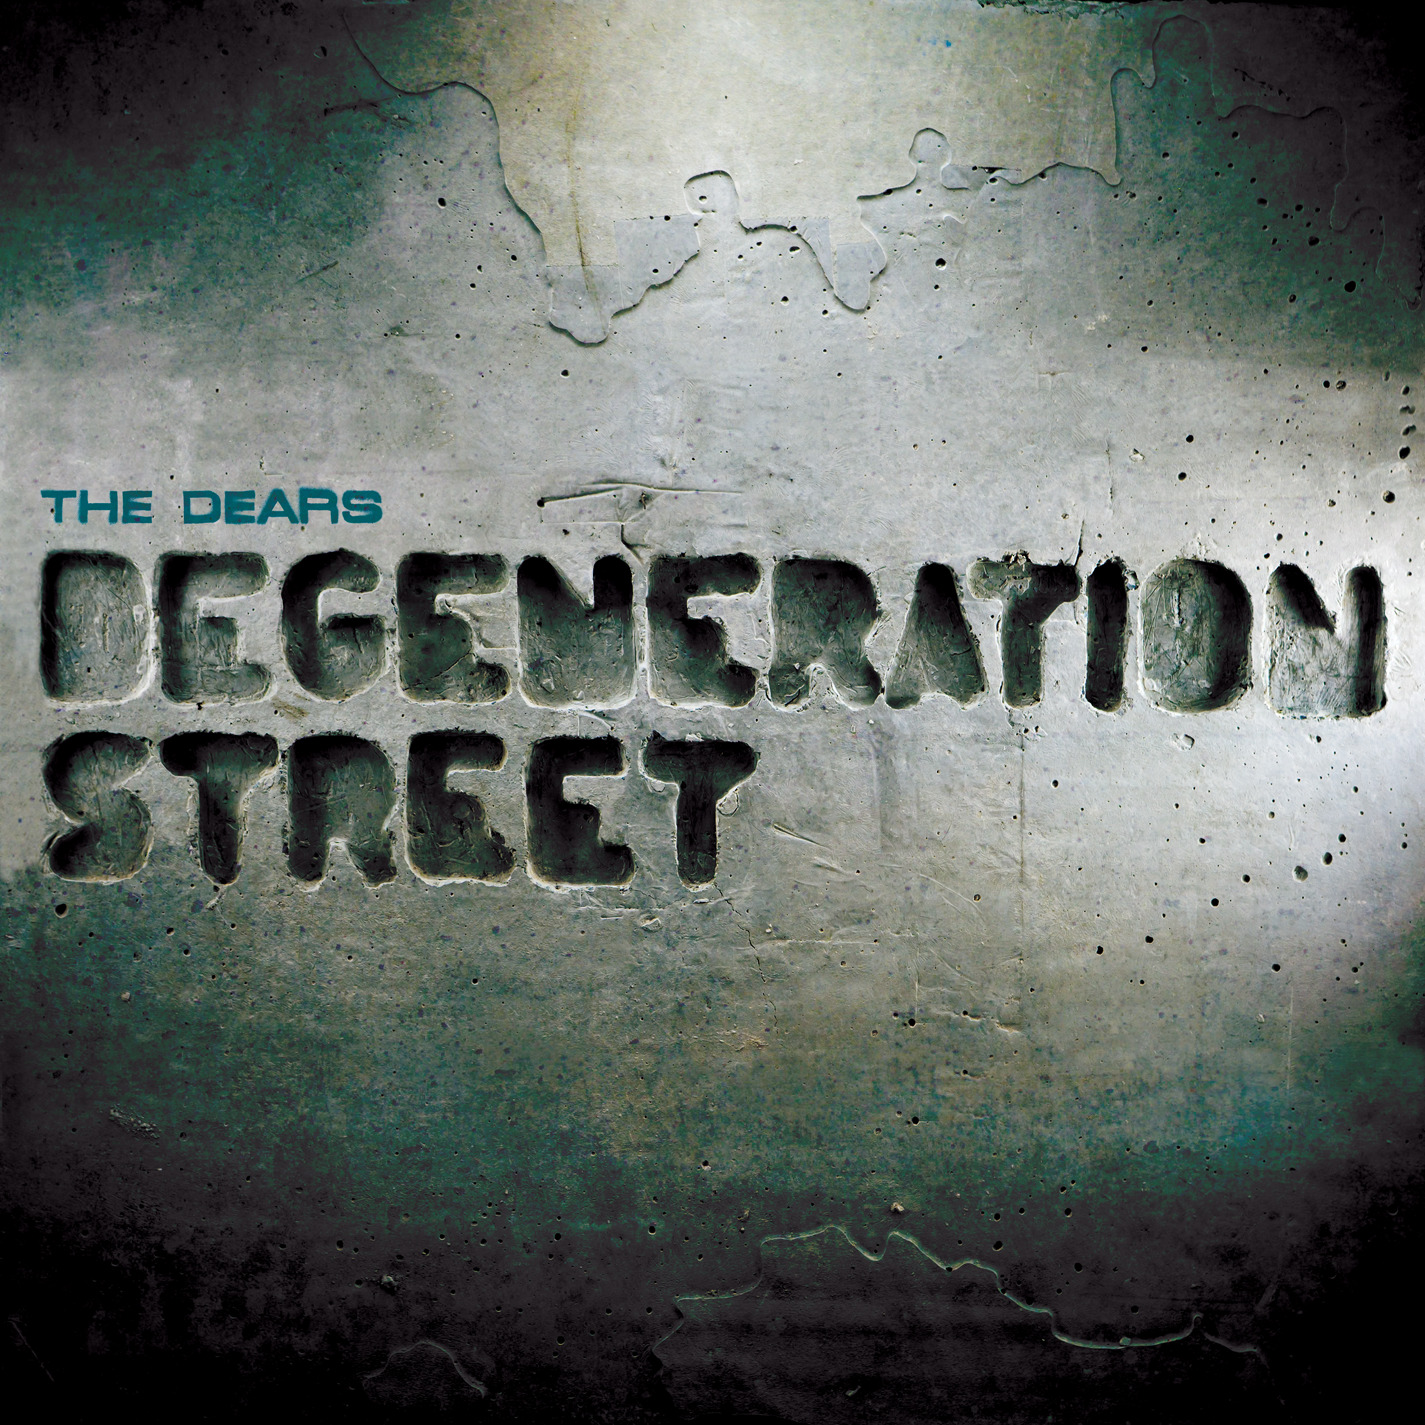 The Dears - Degeneration Street - Digital